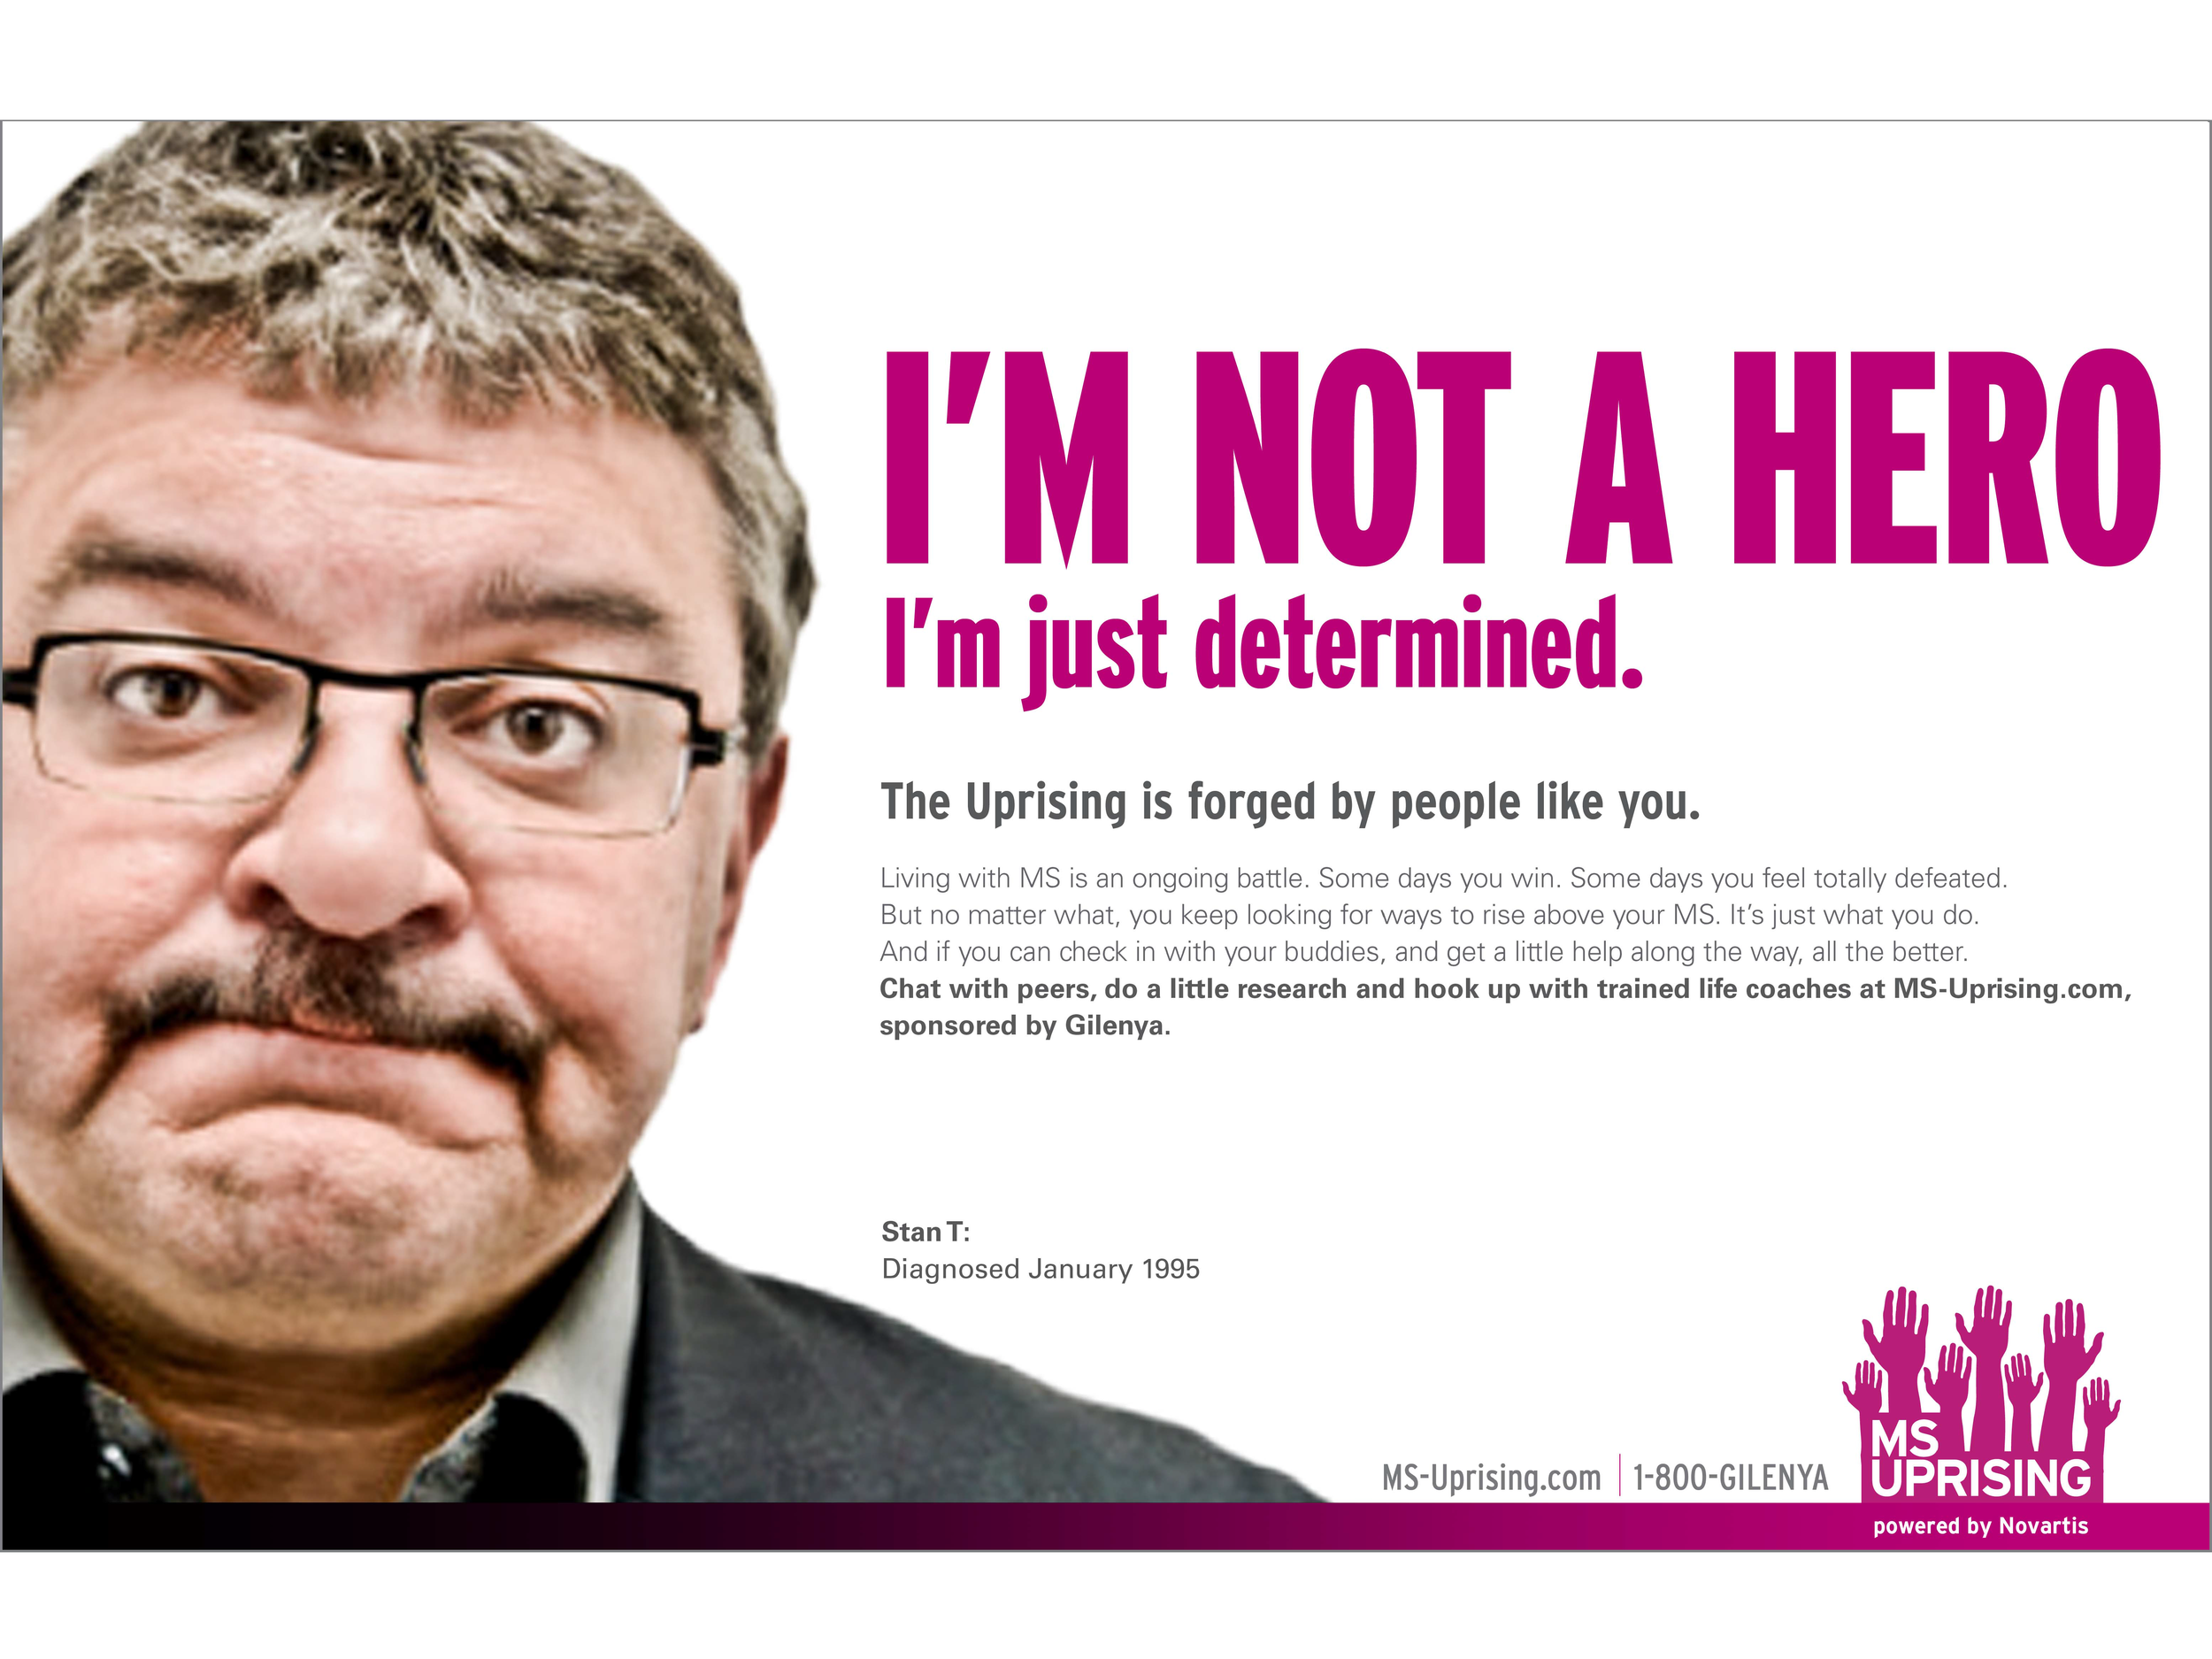 Pages from novartis_uprising_creative-9.png